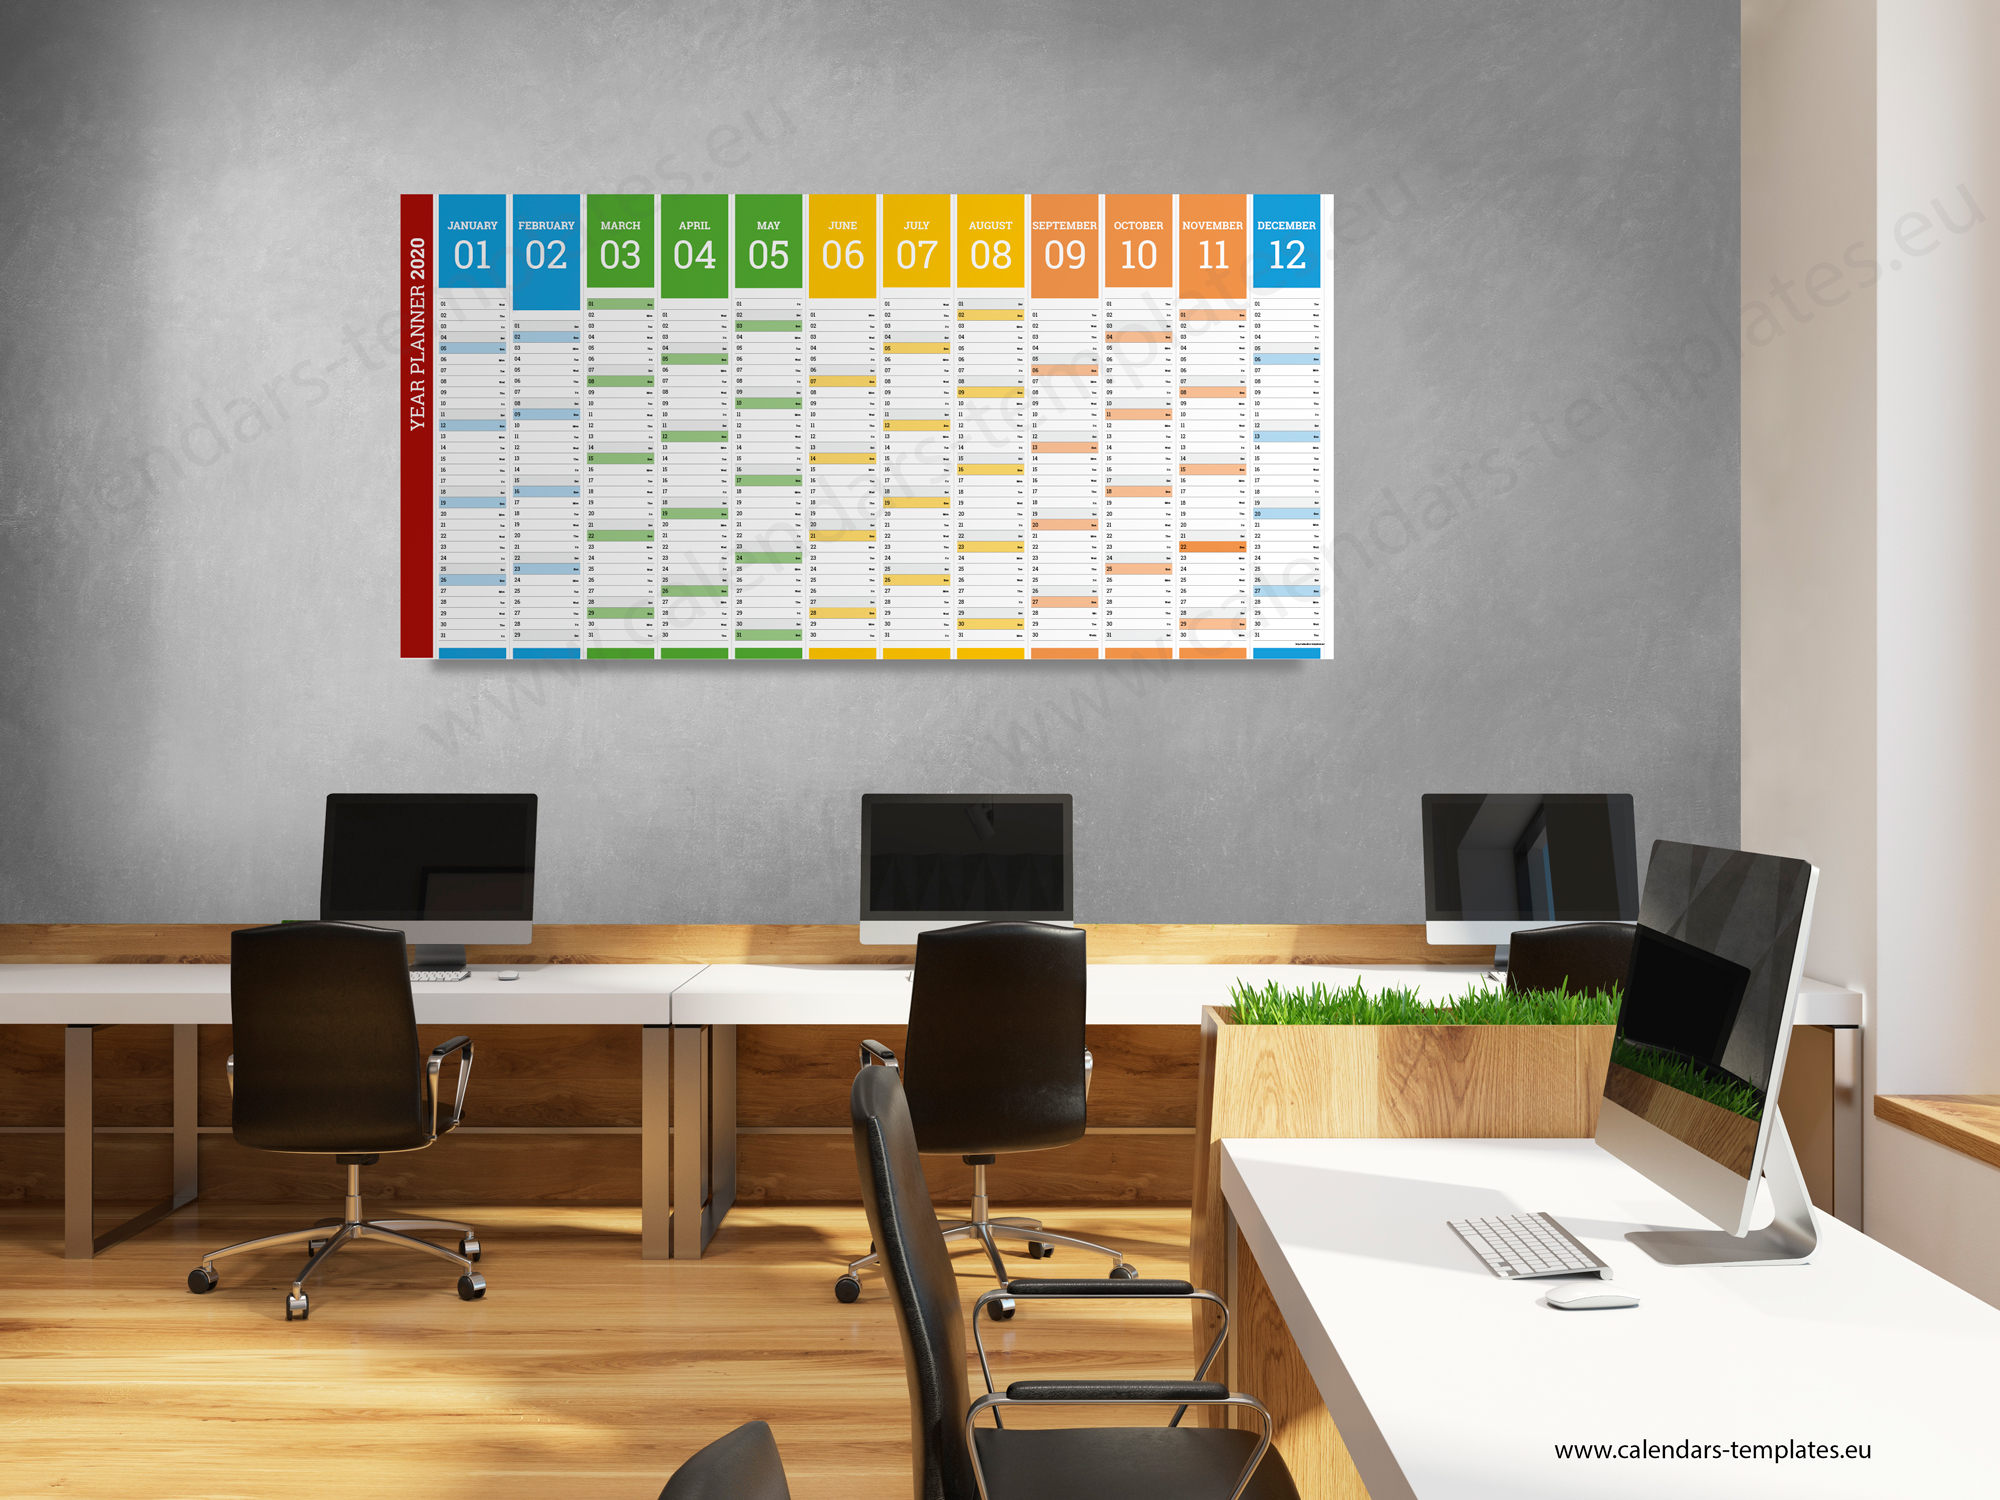 2020 Yearly wall planner KP-W12 Long